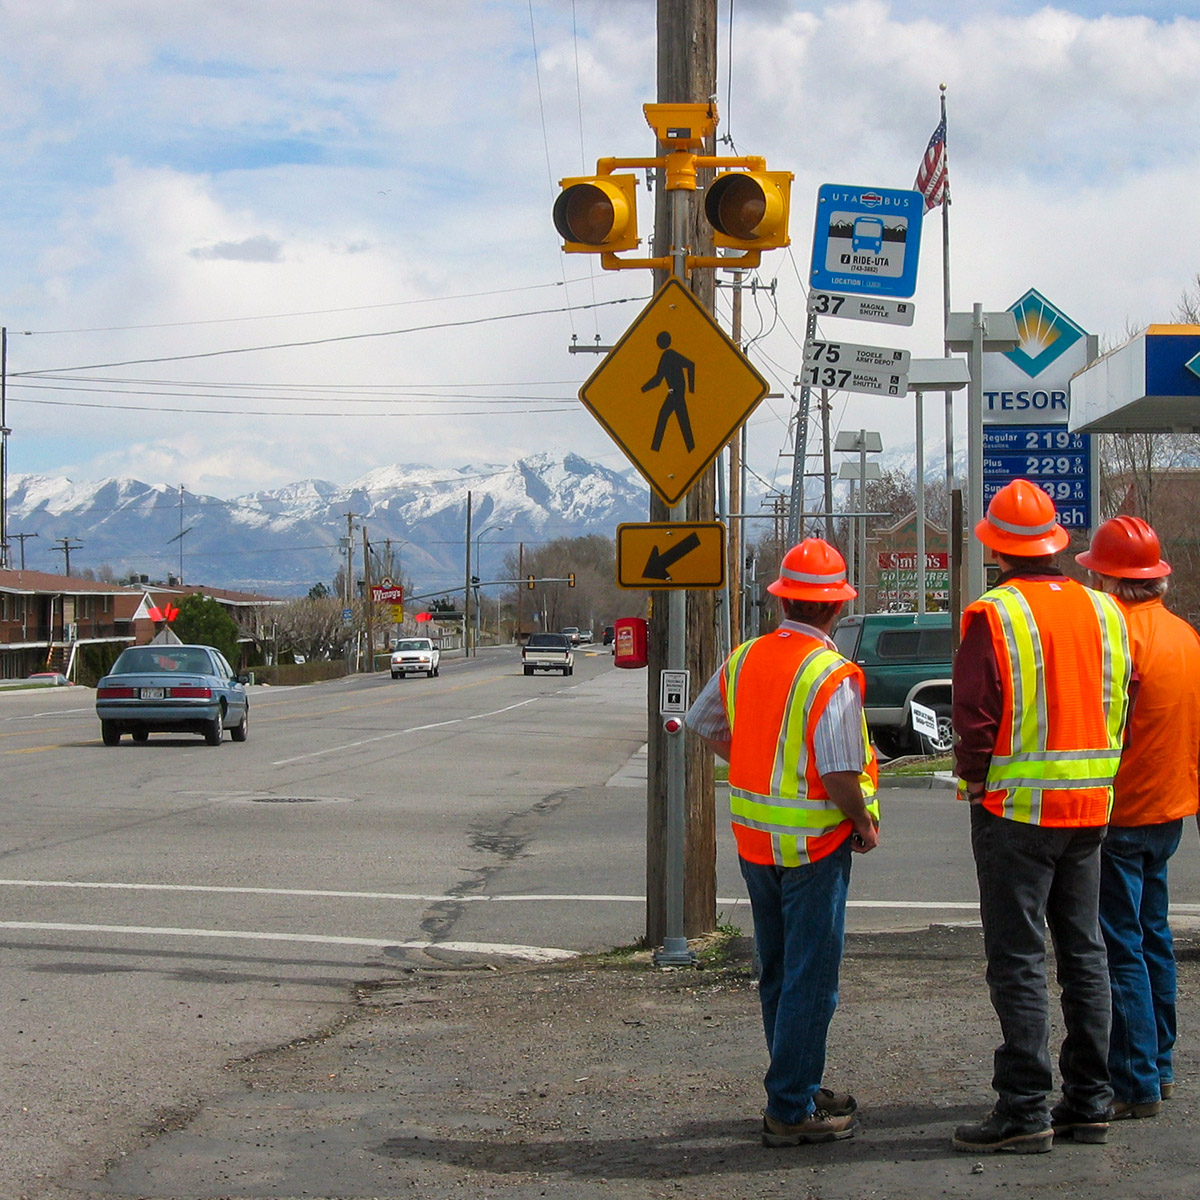 solar-powered crosswalk beacon with installers